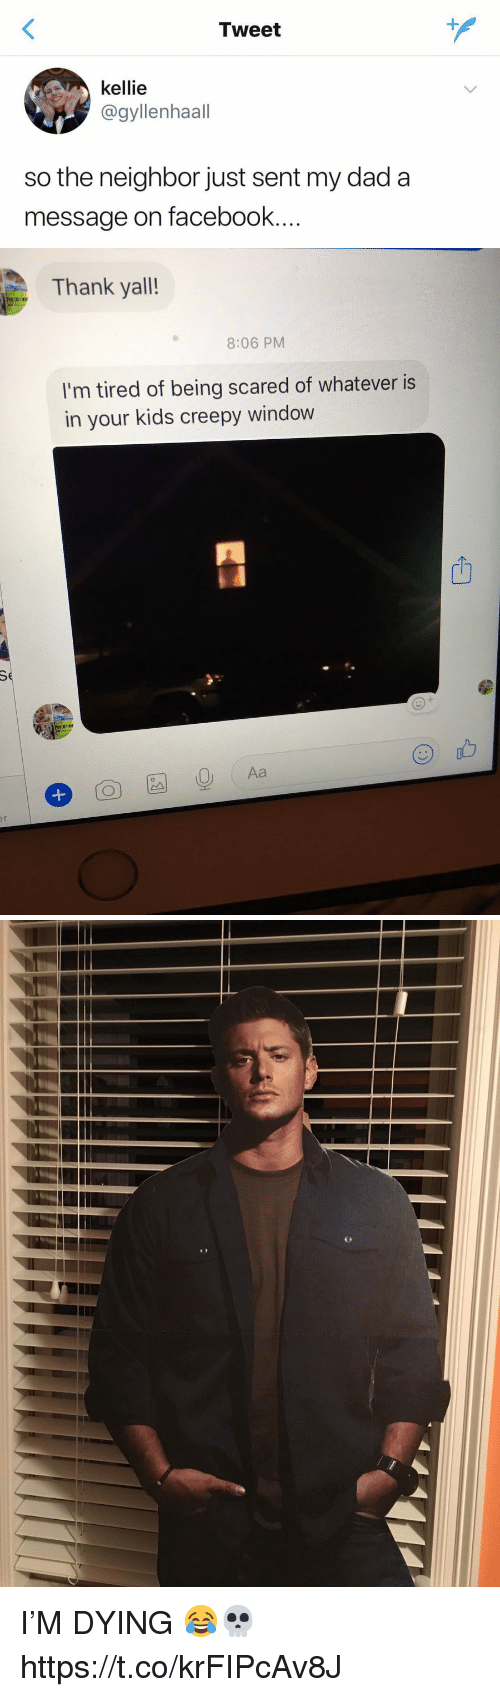 Creepy, Dad, and Facebook: Tweet  kellie  @gyllenhaall  so the neighbor just sent my dad a  message on facebook...   Thank yall!  8:06 PM  I'm tired of being scared of whatever is  in your kids creepy window  山  I'M DYING 😂💀 https://t.co/krFIPcAv8J